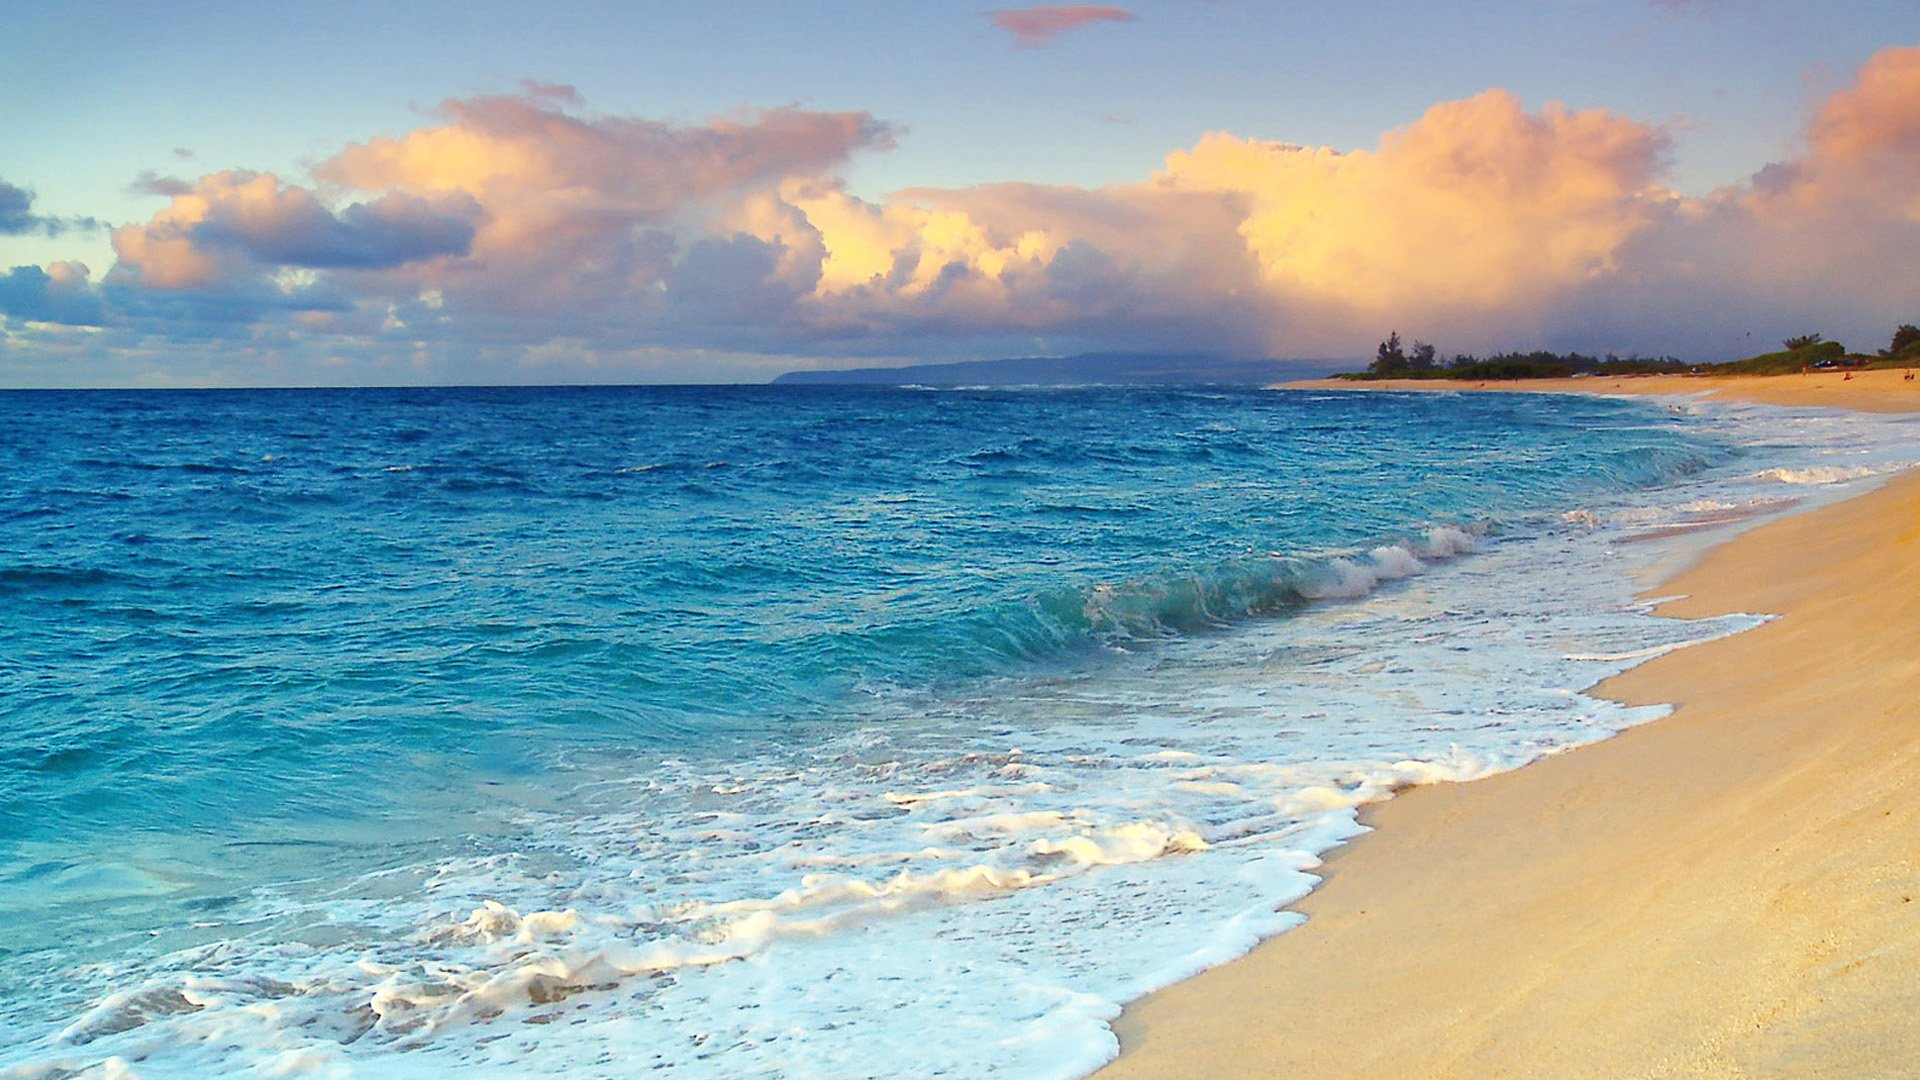 Waikoloa beach resort wallpaper.jpeg, Beach Pictures and images